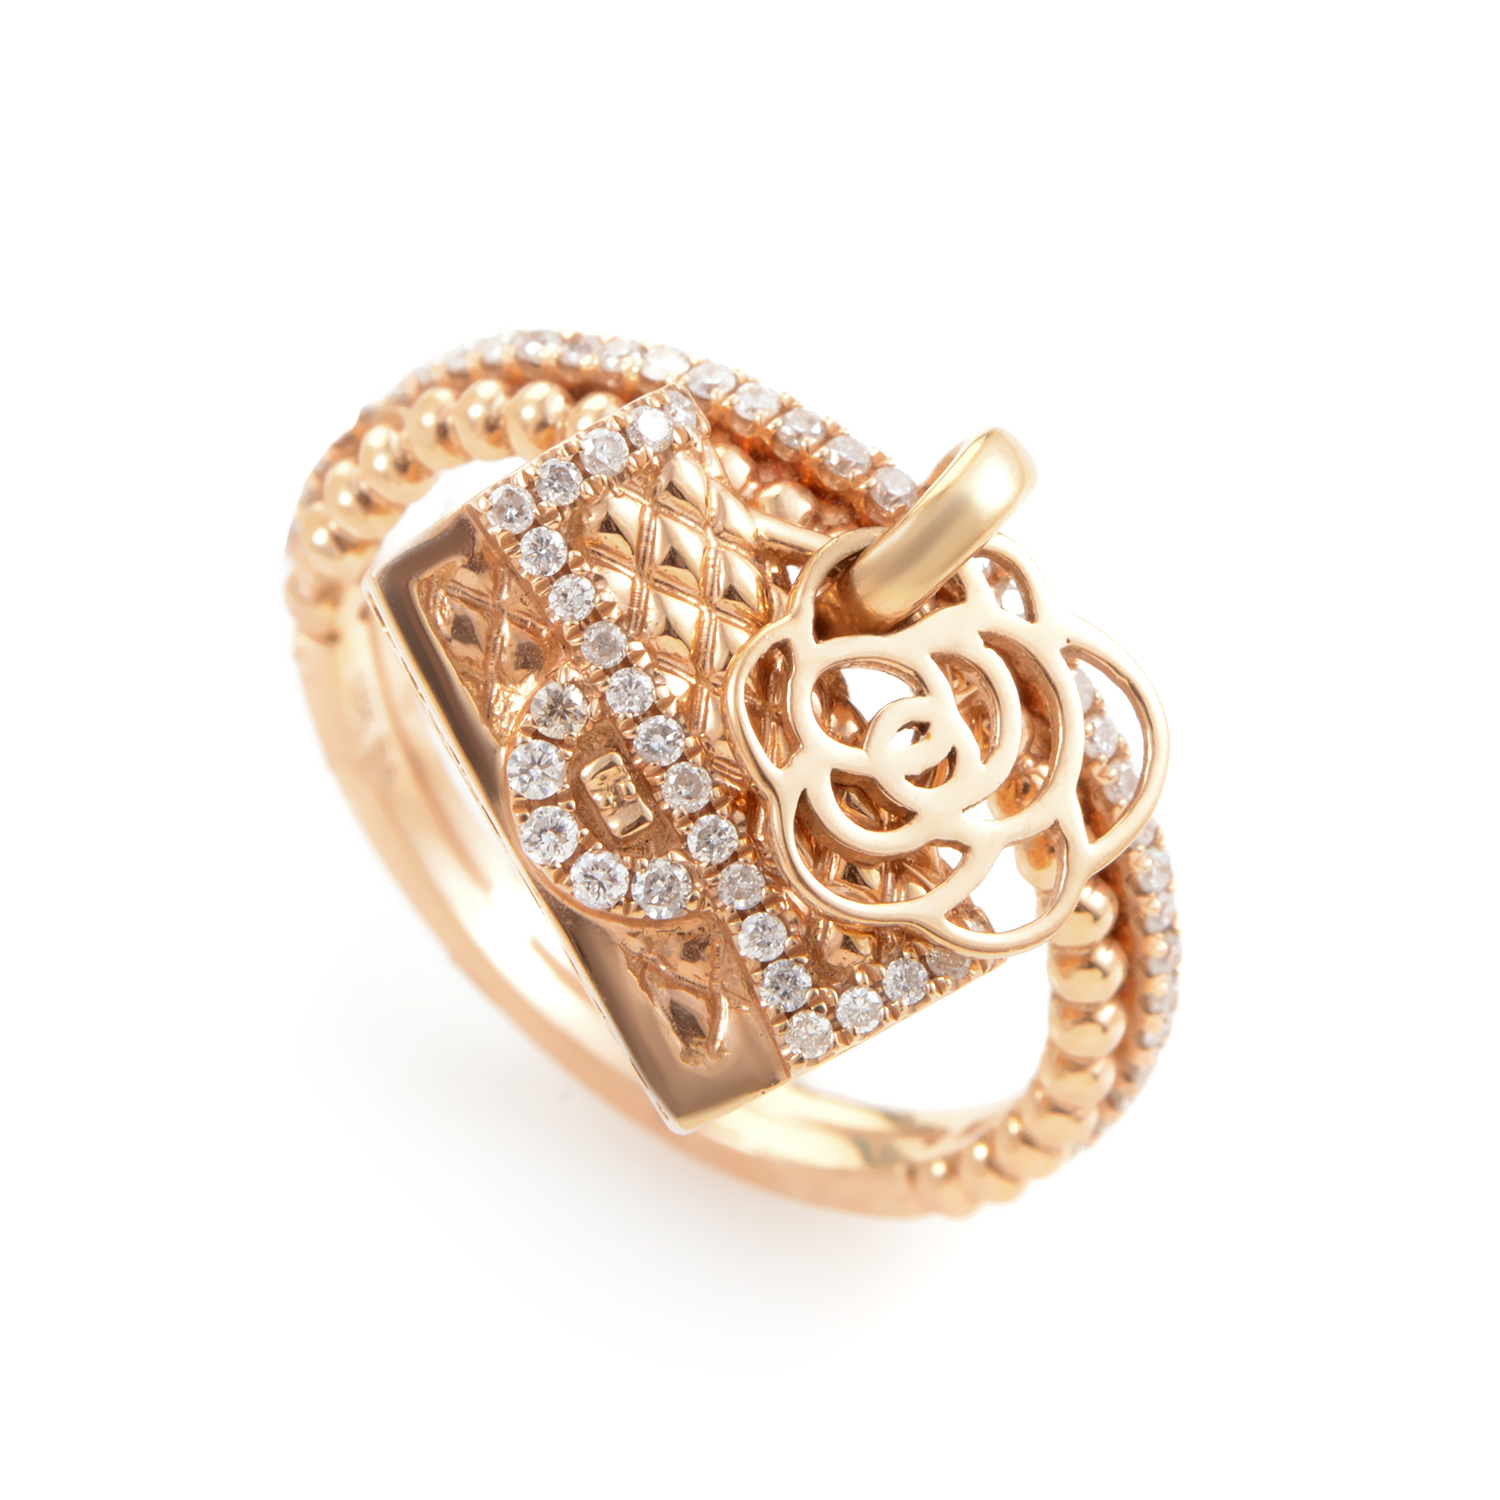 18K Rose Gold Diamond Charm Ring KO28502RERZ